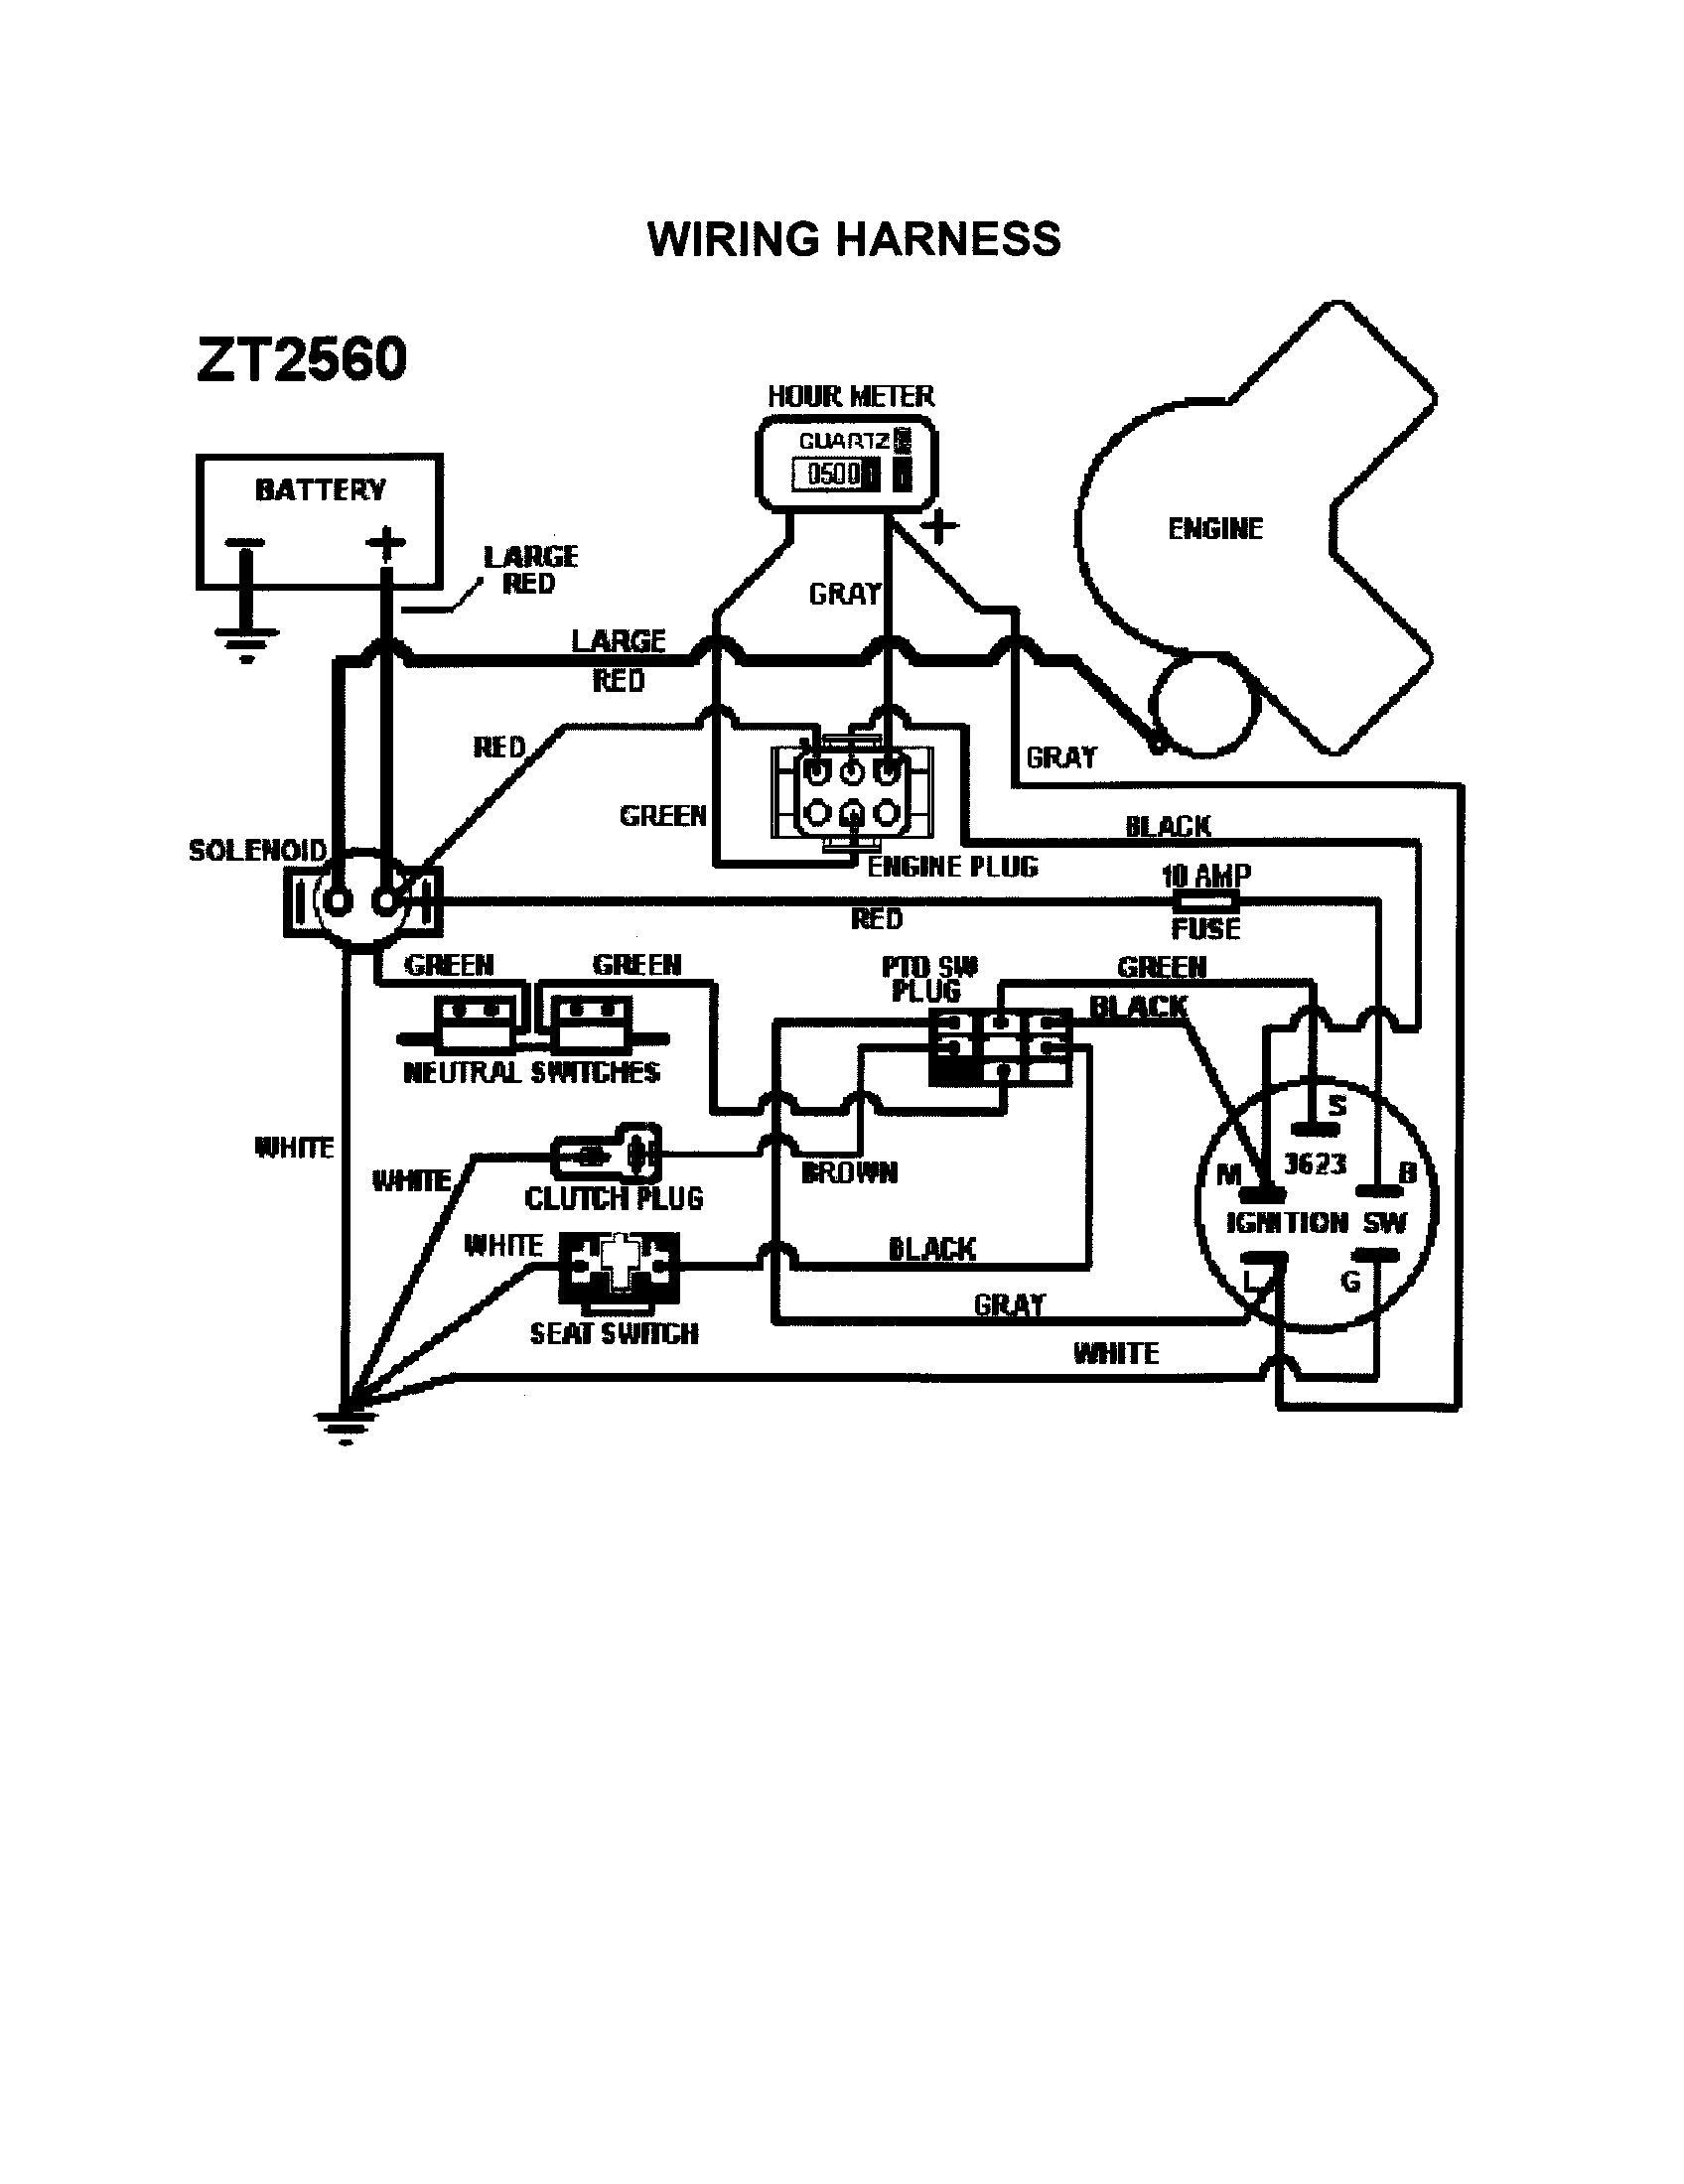 hight resolution of toro zero turn wiring diagram free download